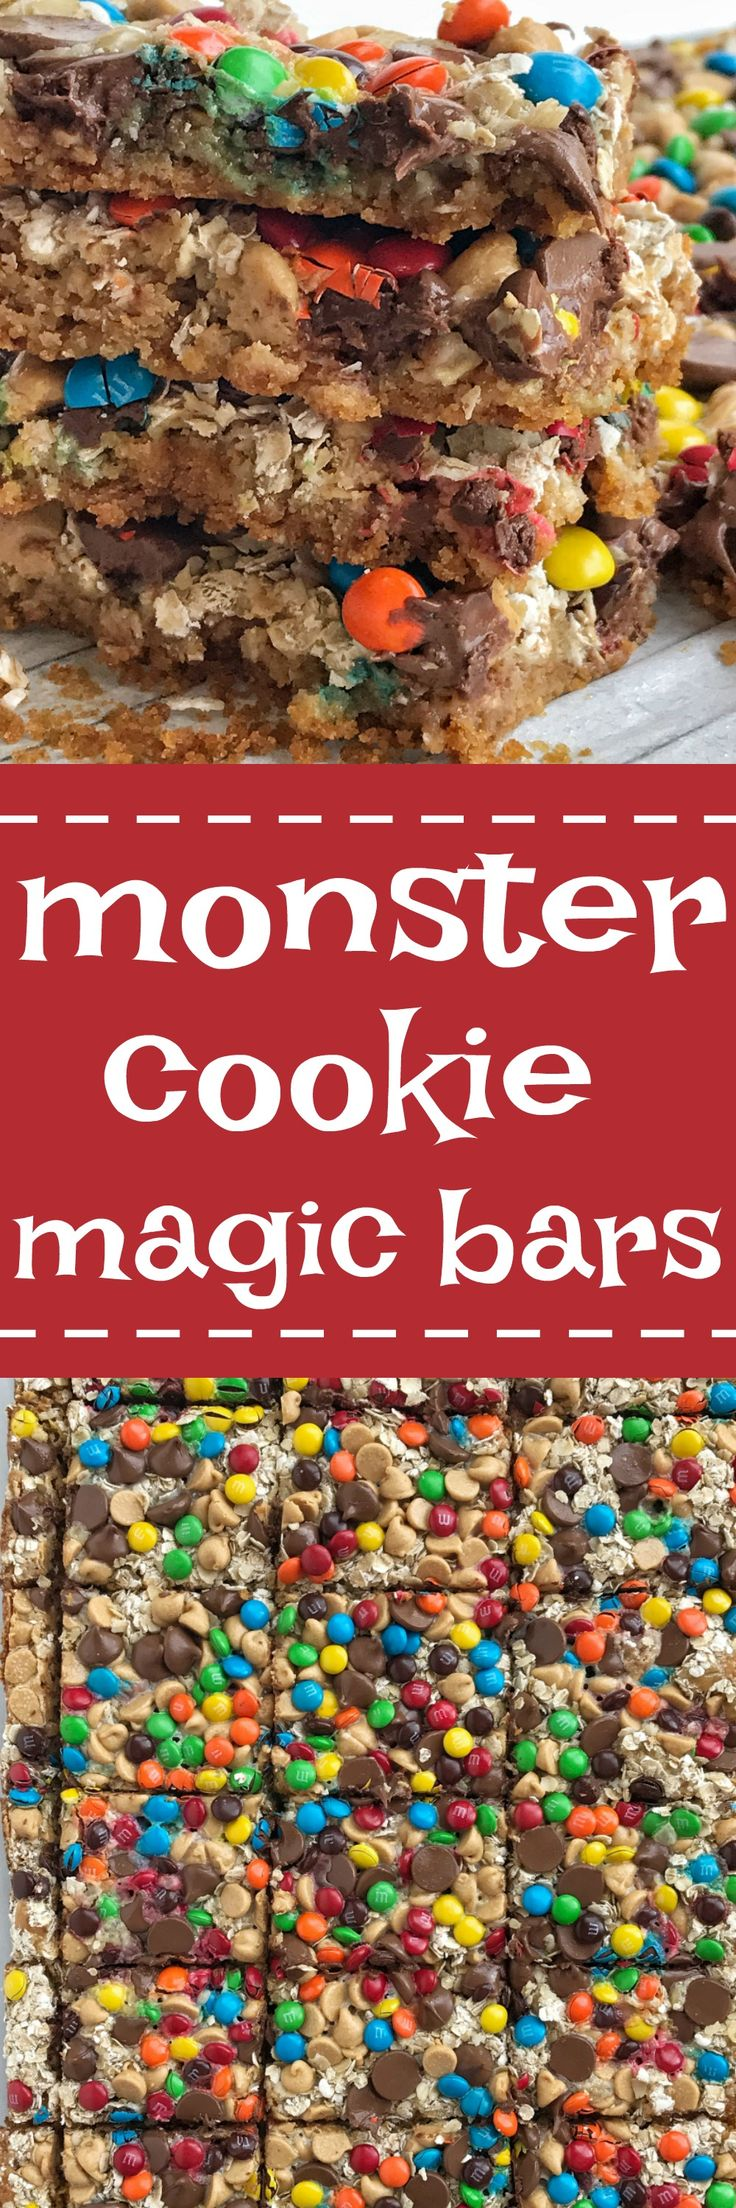 All the classic flavors you love in a monster cookie but in a magic cookie bar! These monster cookie magic bars have a salty sweet graham cracker crust and then loaded with oats, peanut butter chips, chocolate chips, m&m's and drizzled in sweetened condensed milk.